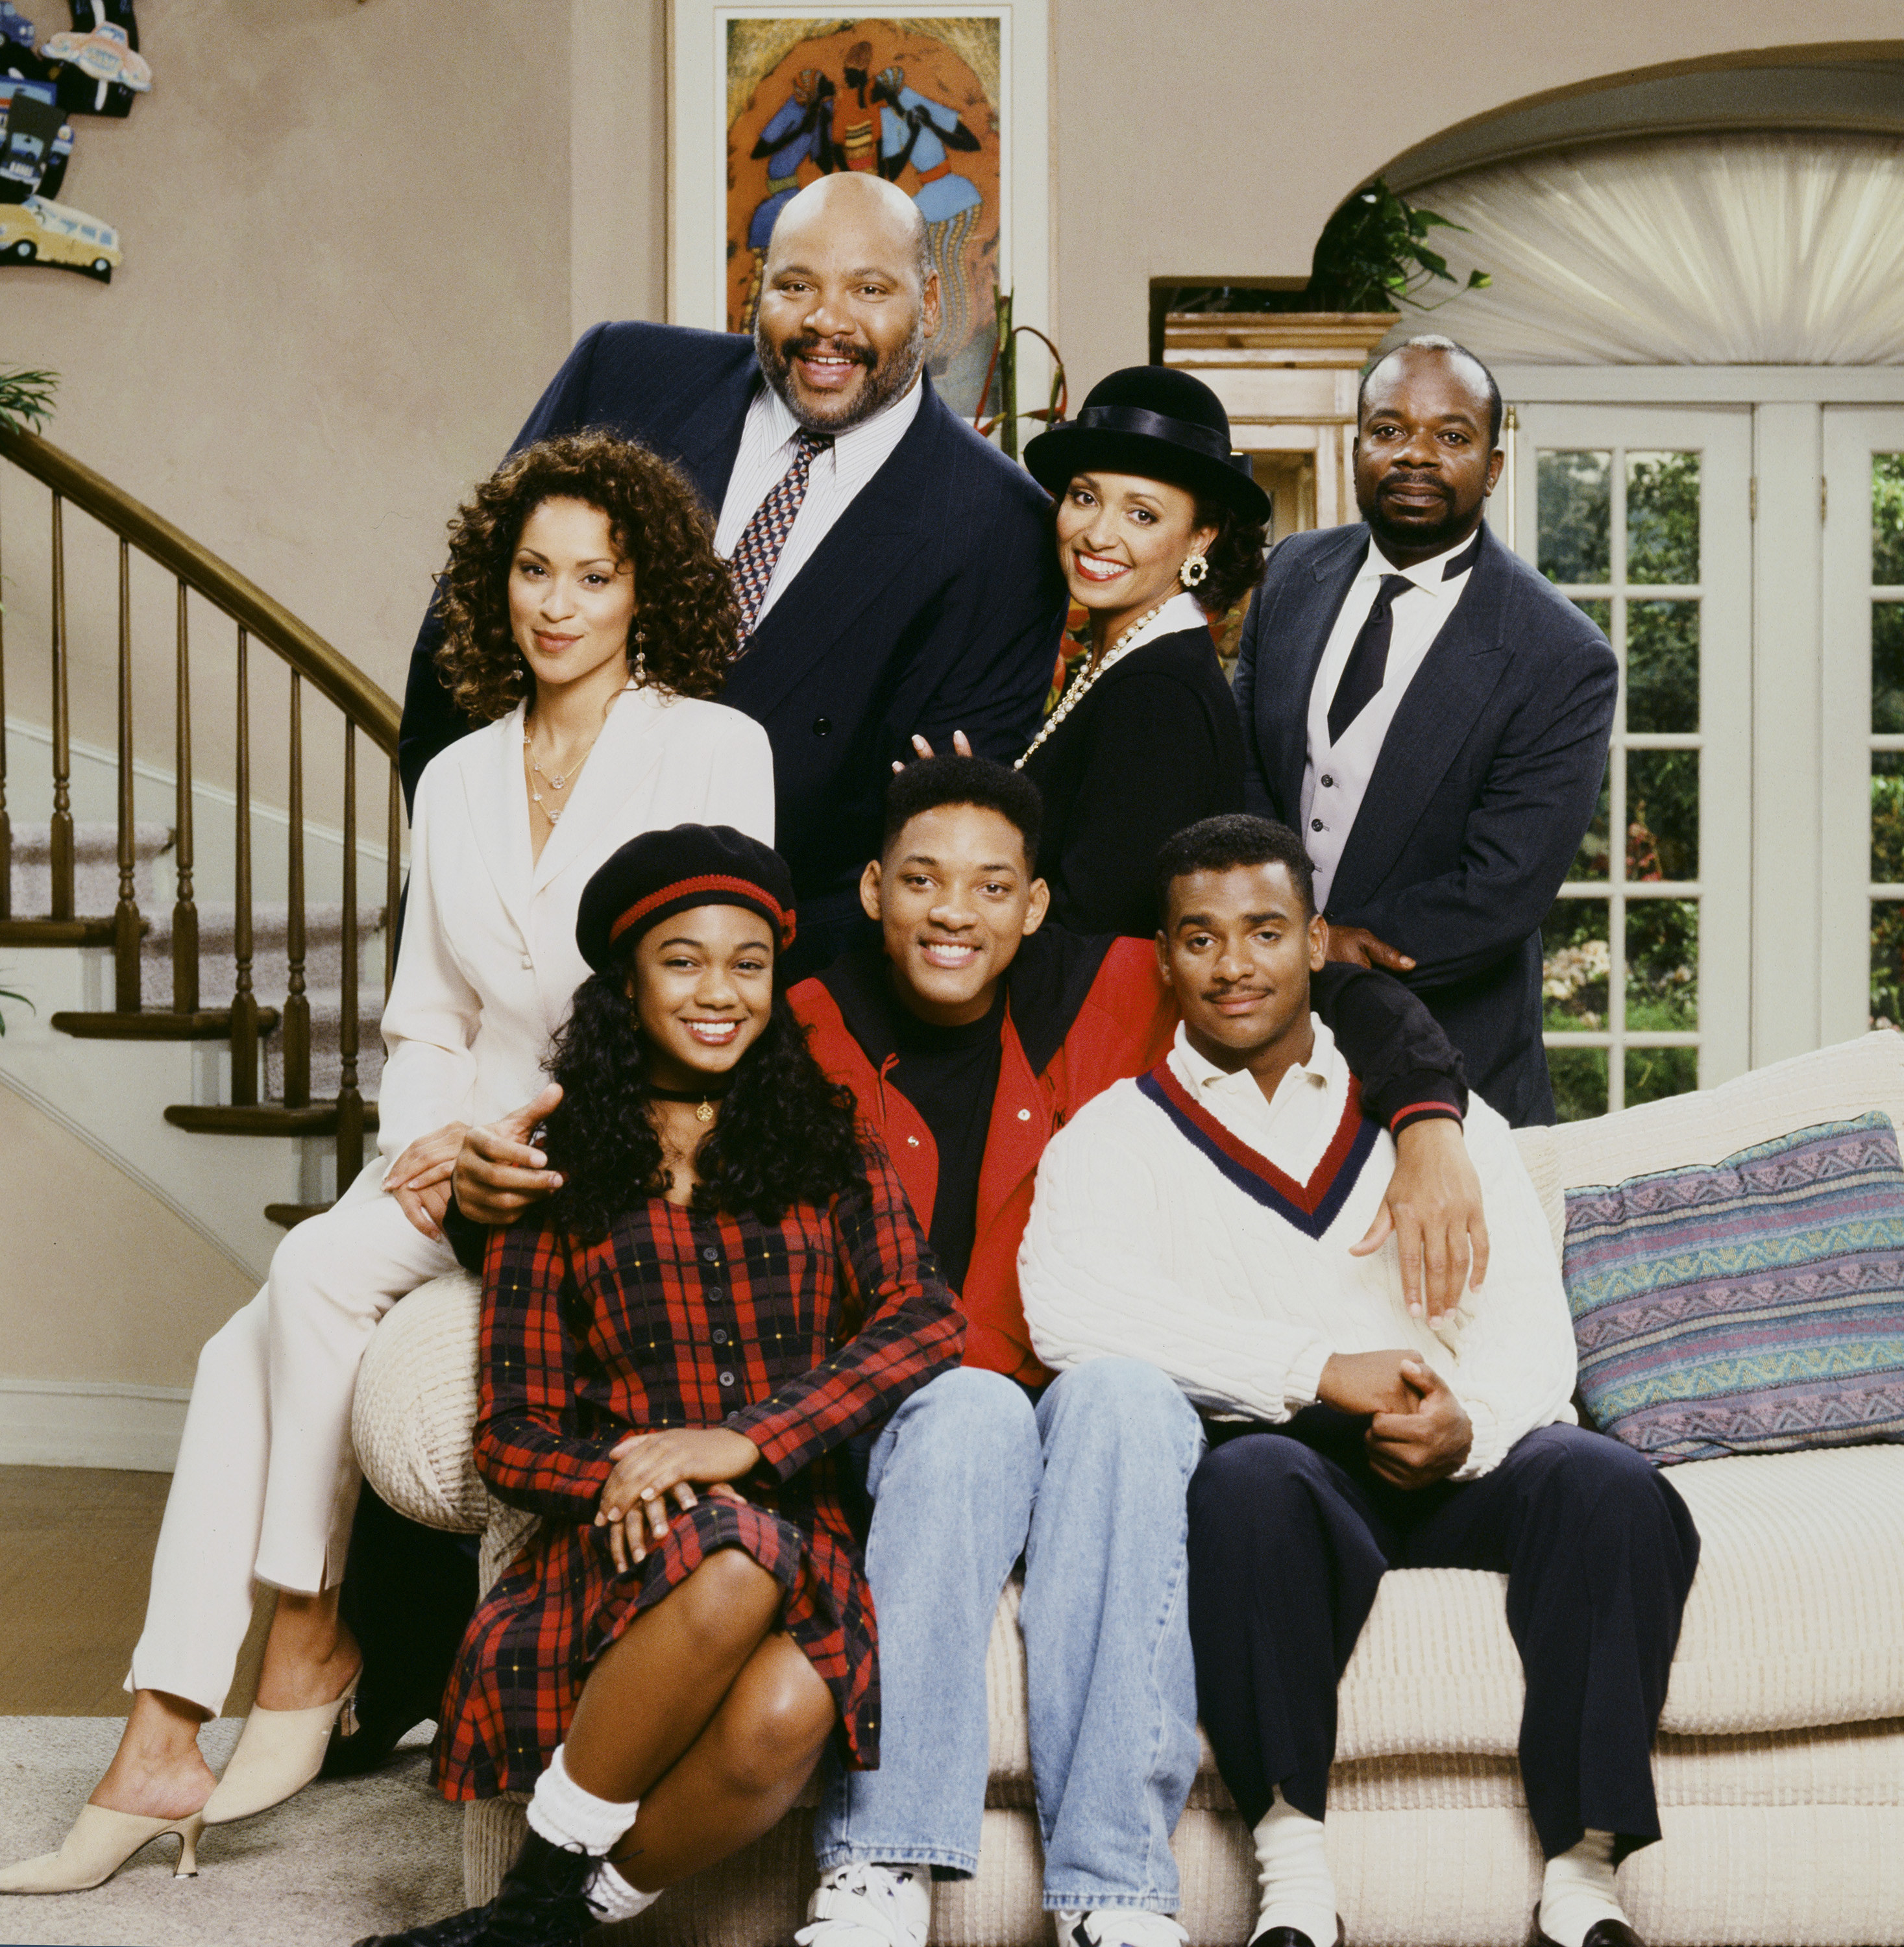 Will Smith, Philip Banks, Vivian Banks, Carlton Banks, Hilary Banks, Ashley Banks, and Geoffrey Butler from The Fresh Prince of Bel-Air